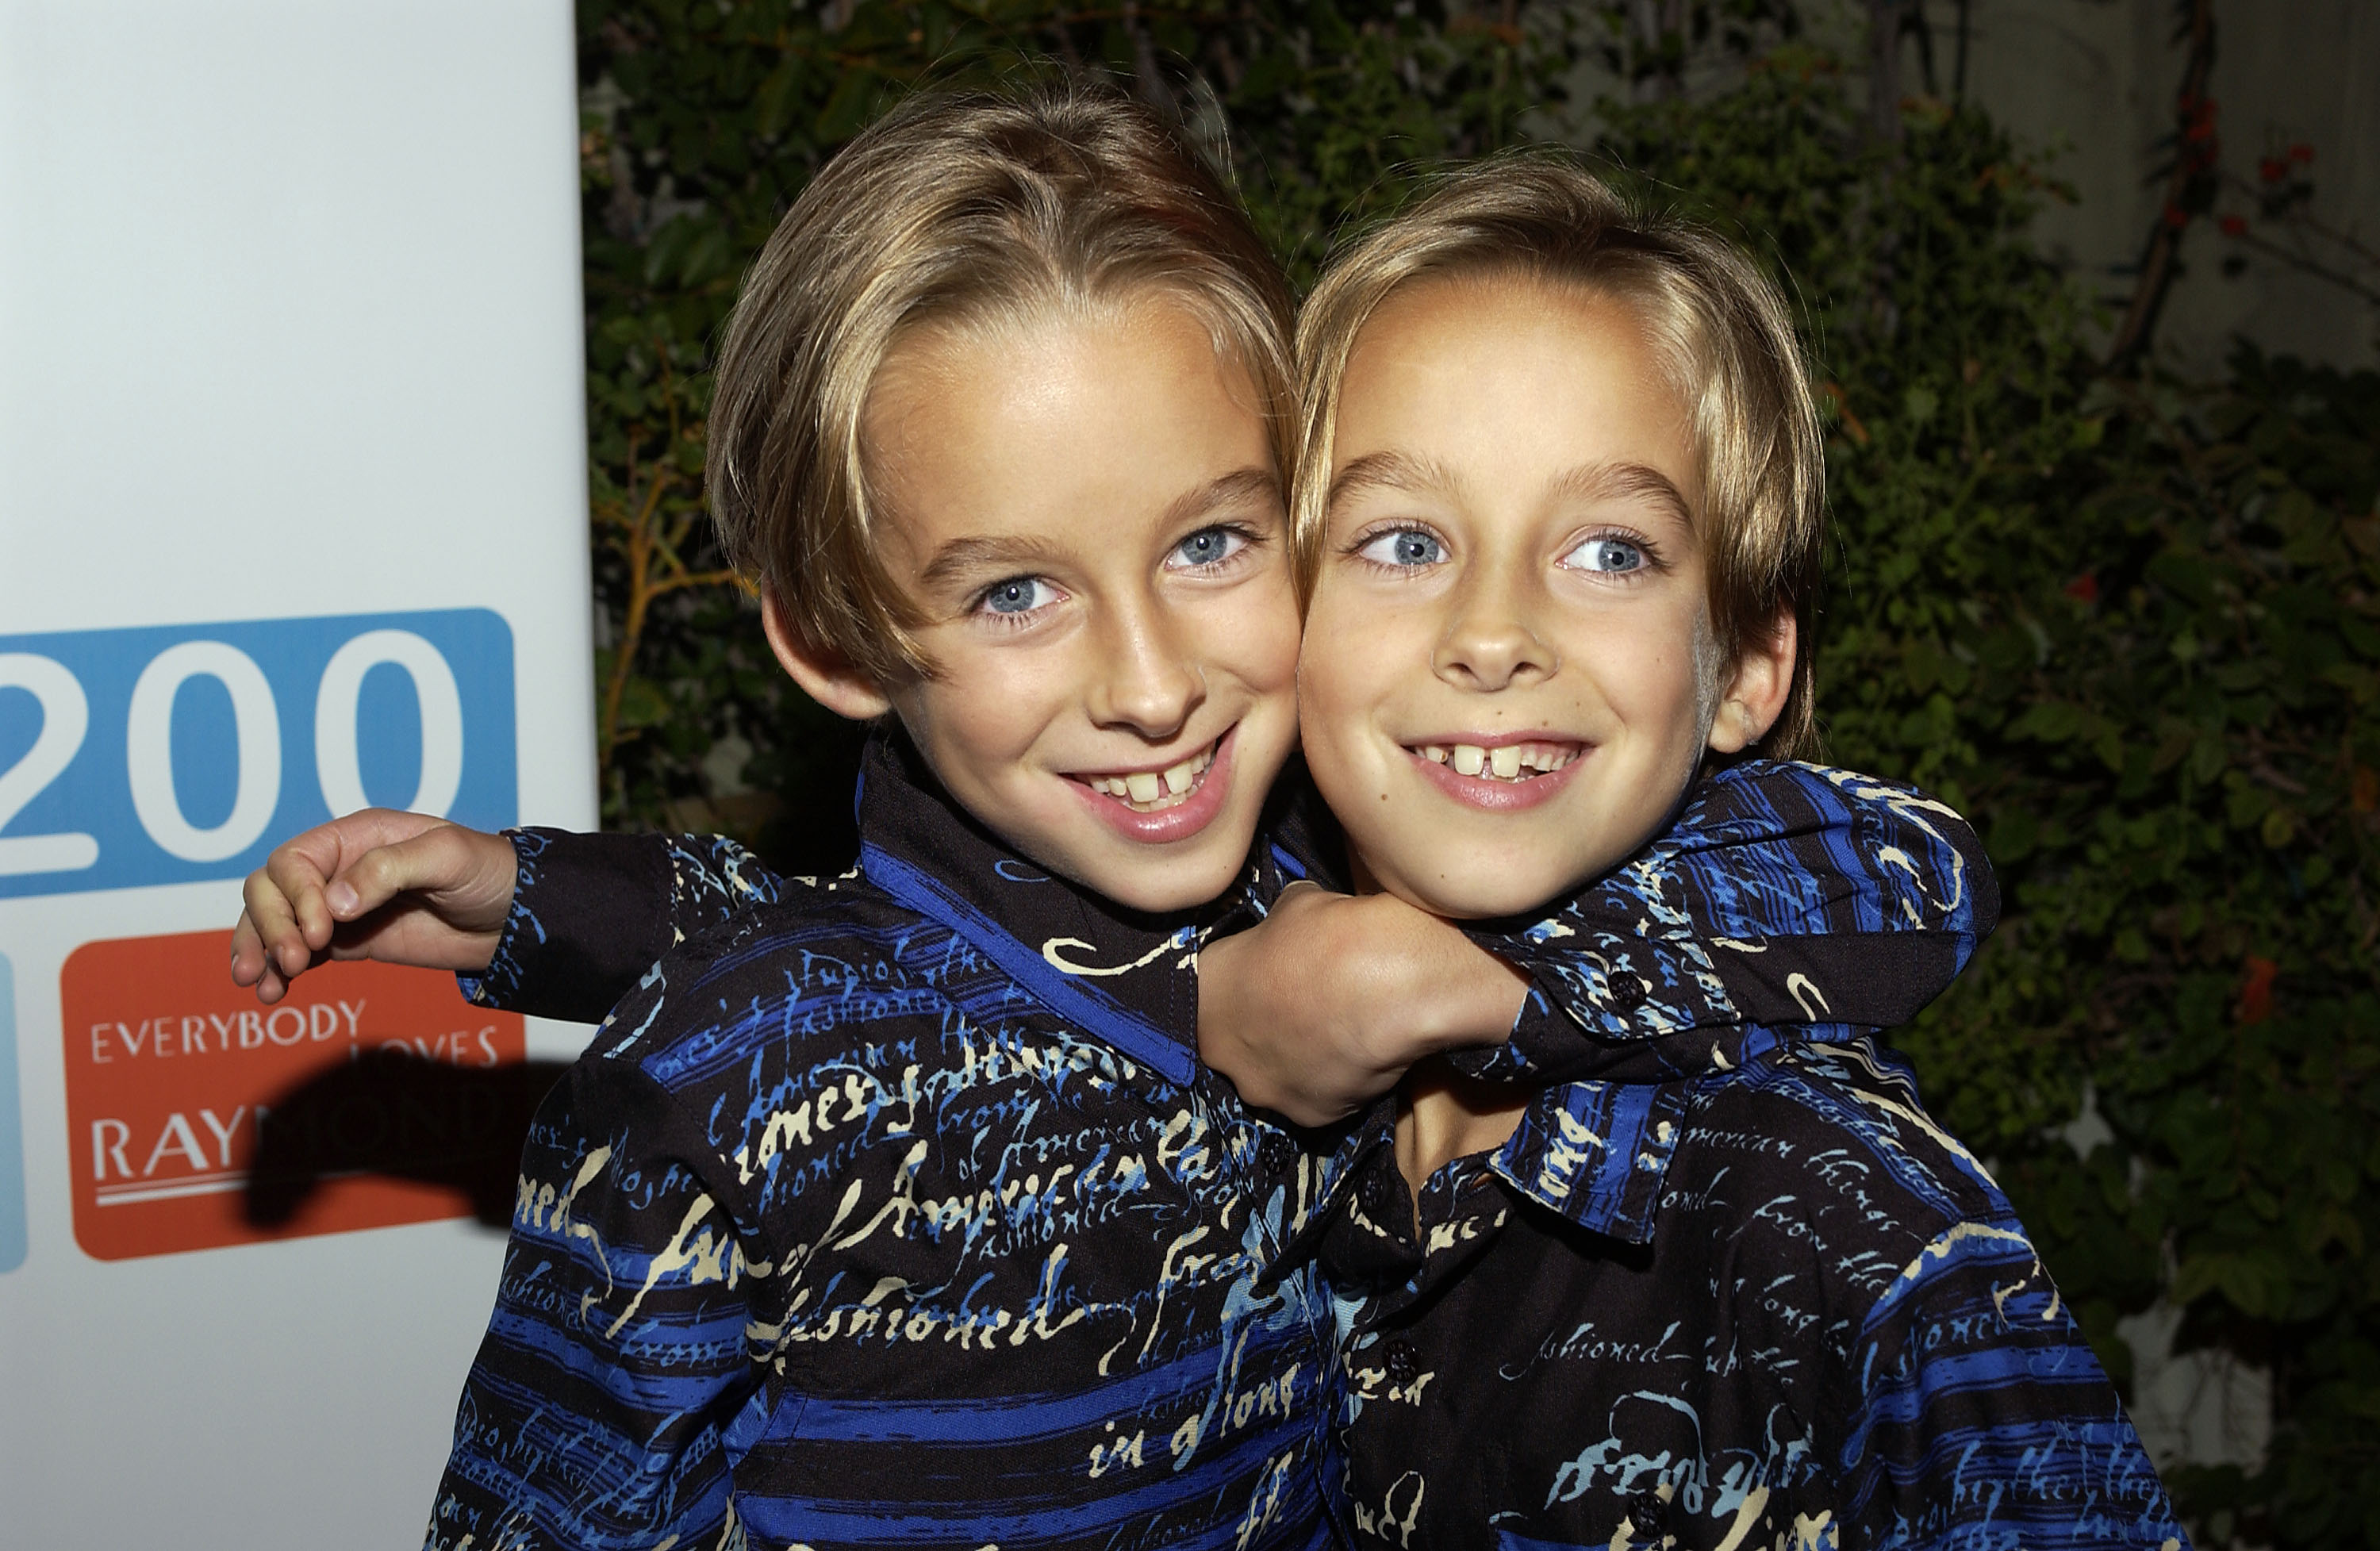 BEVERLY HILLS, CA - OCTOBER 14:  (L-R) Actors Sawyer and Sullivan Sweeten arrive at the party celebrating the 200th Episode o